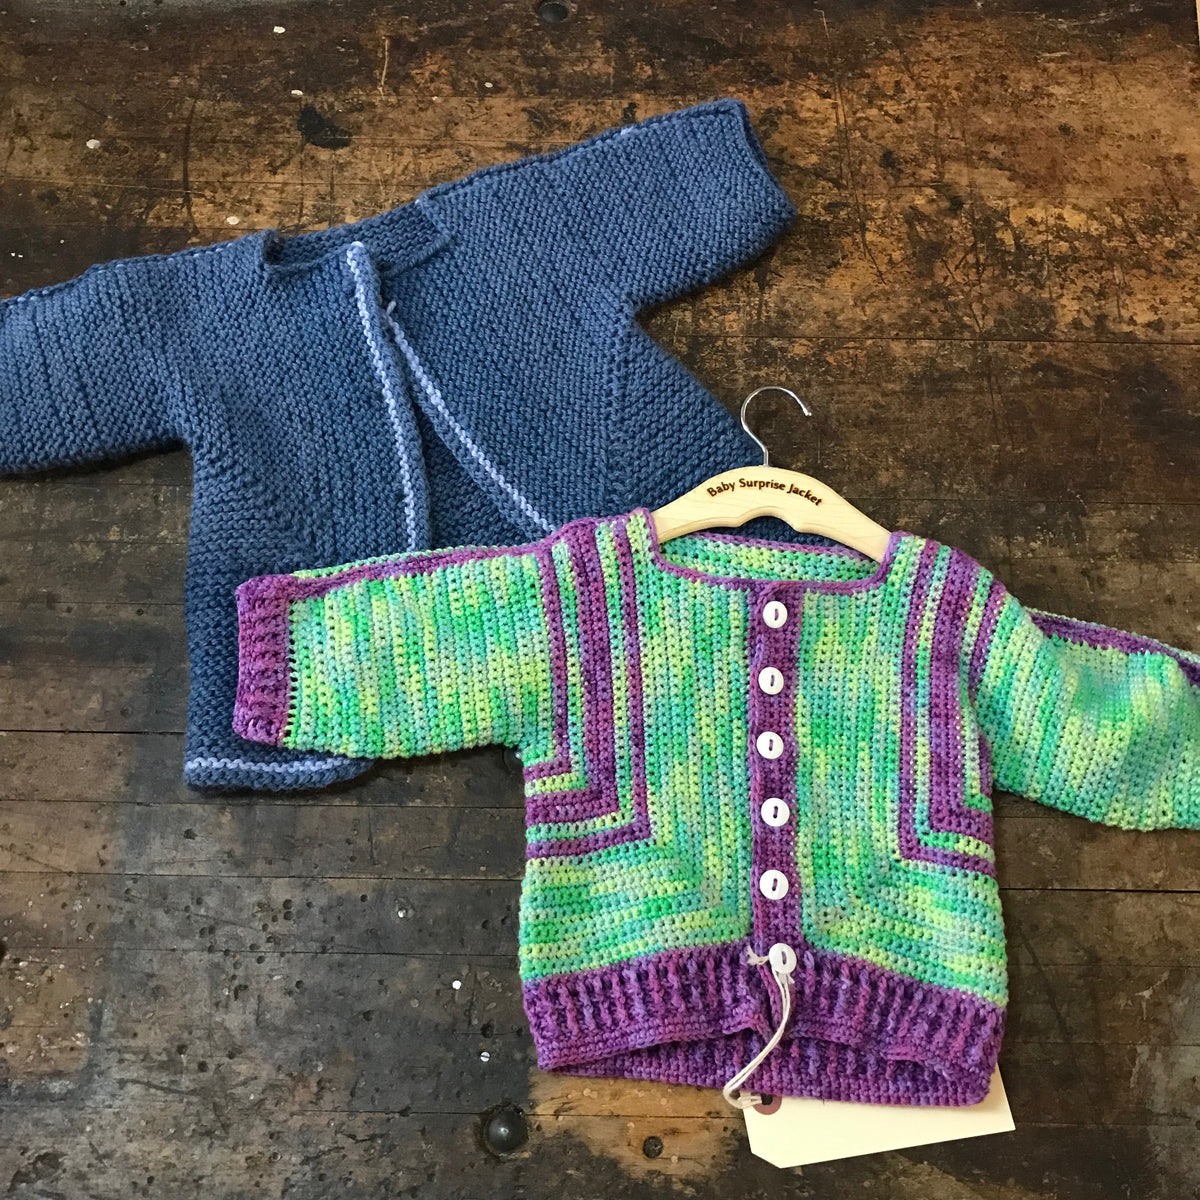 Baby Surprise Jacket Class KNIT OR CROCHET October